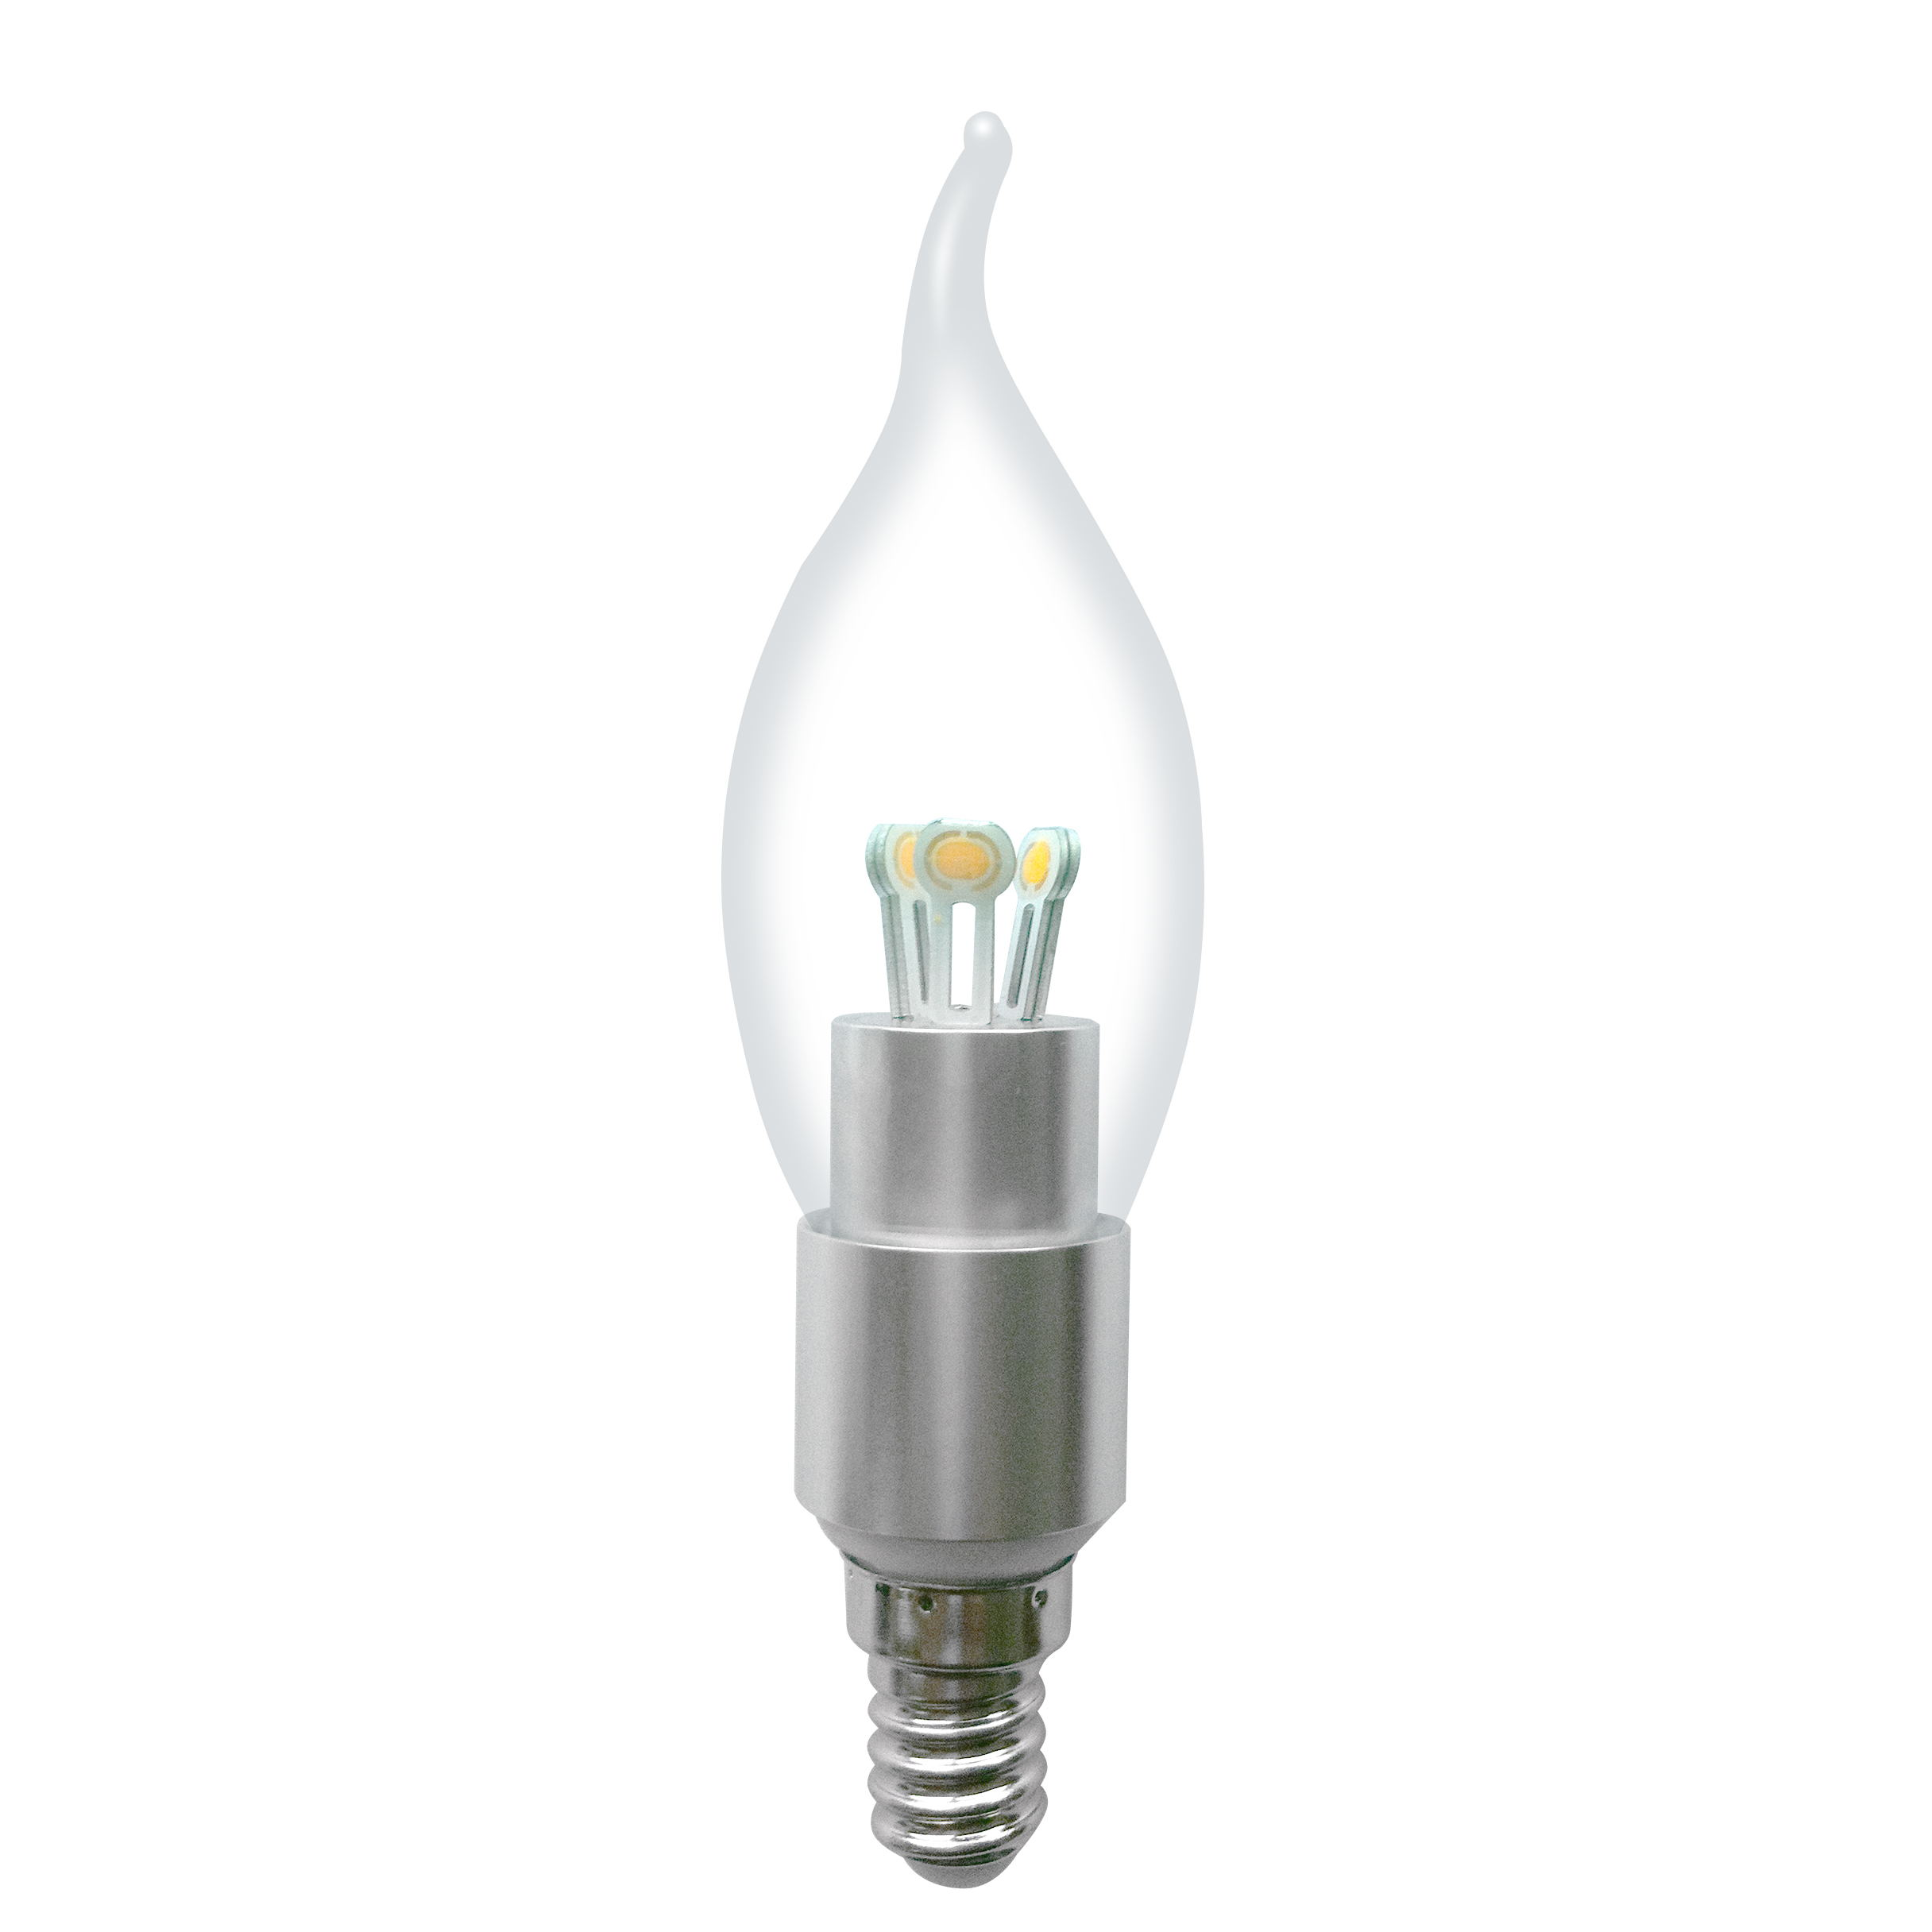 Dimmable LED Bent-tip Bulb High Quality Silver Aluminum 4W Ra85 E14 280lm  85-265V COB LED Chip Clear/Frosted/Milky Glass Cover